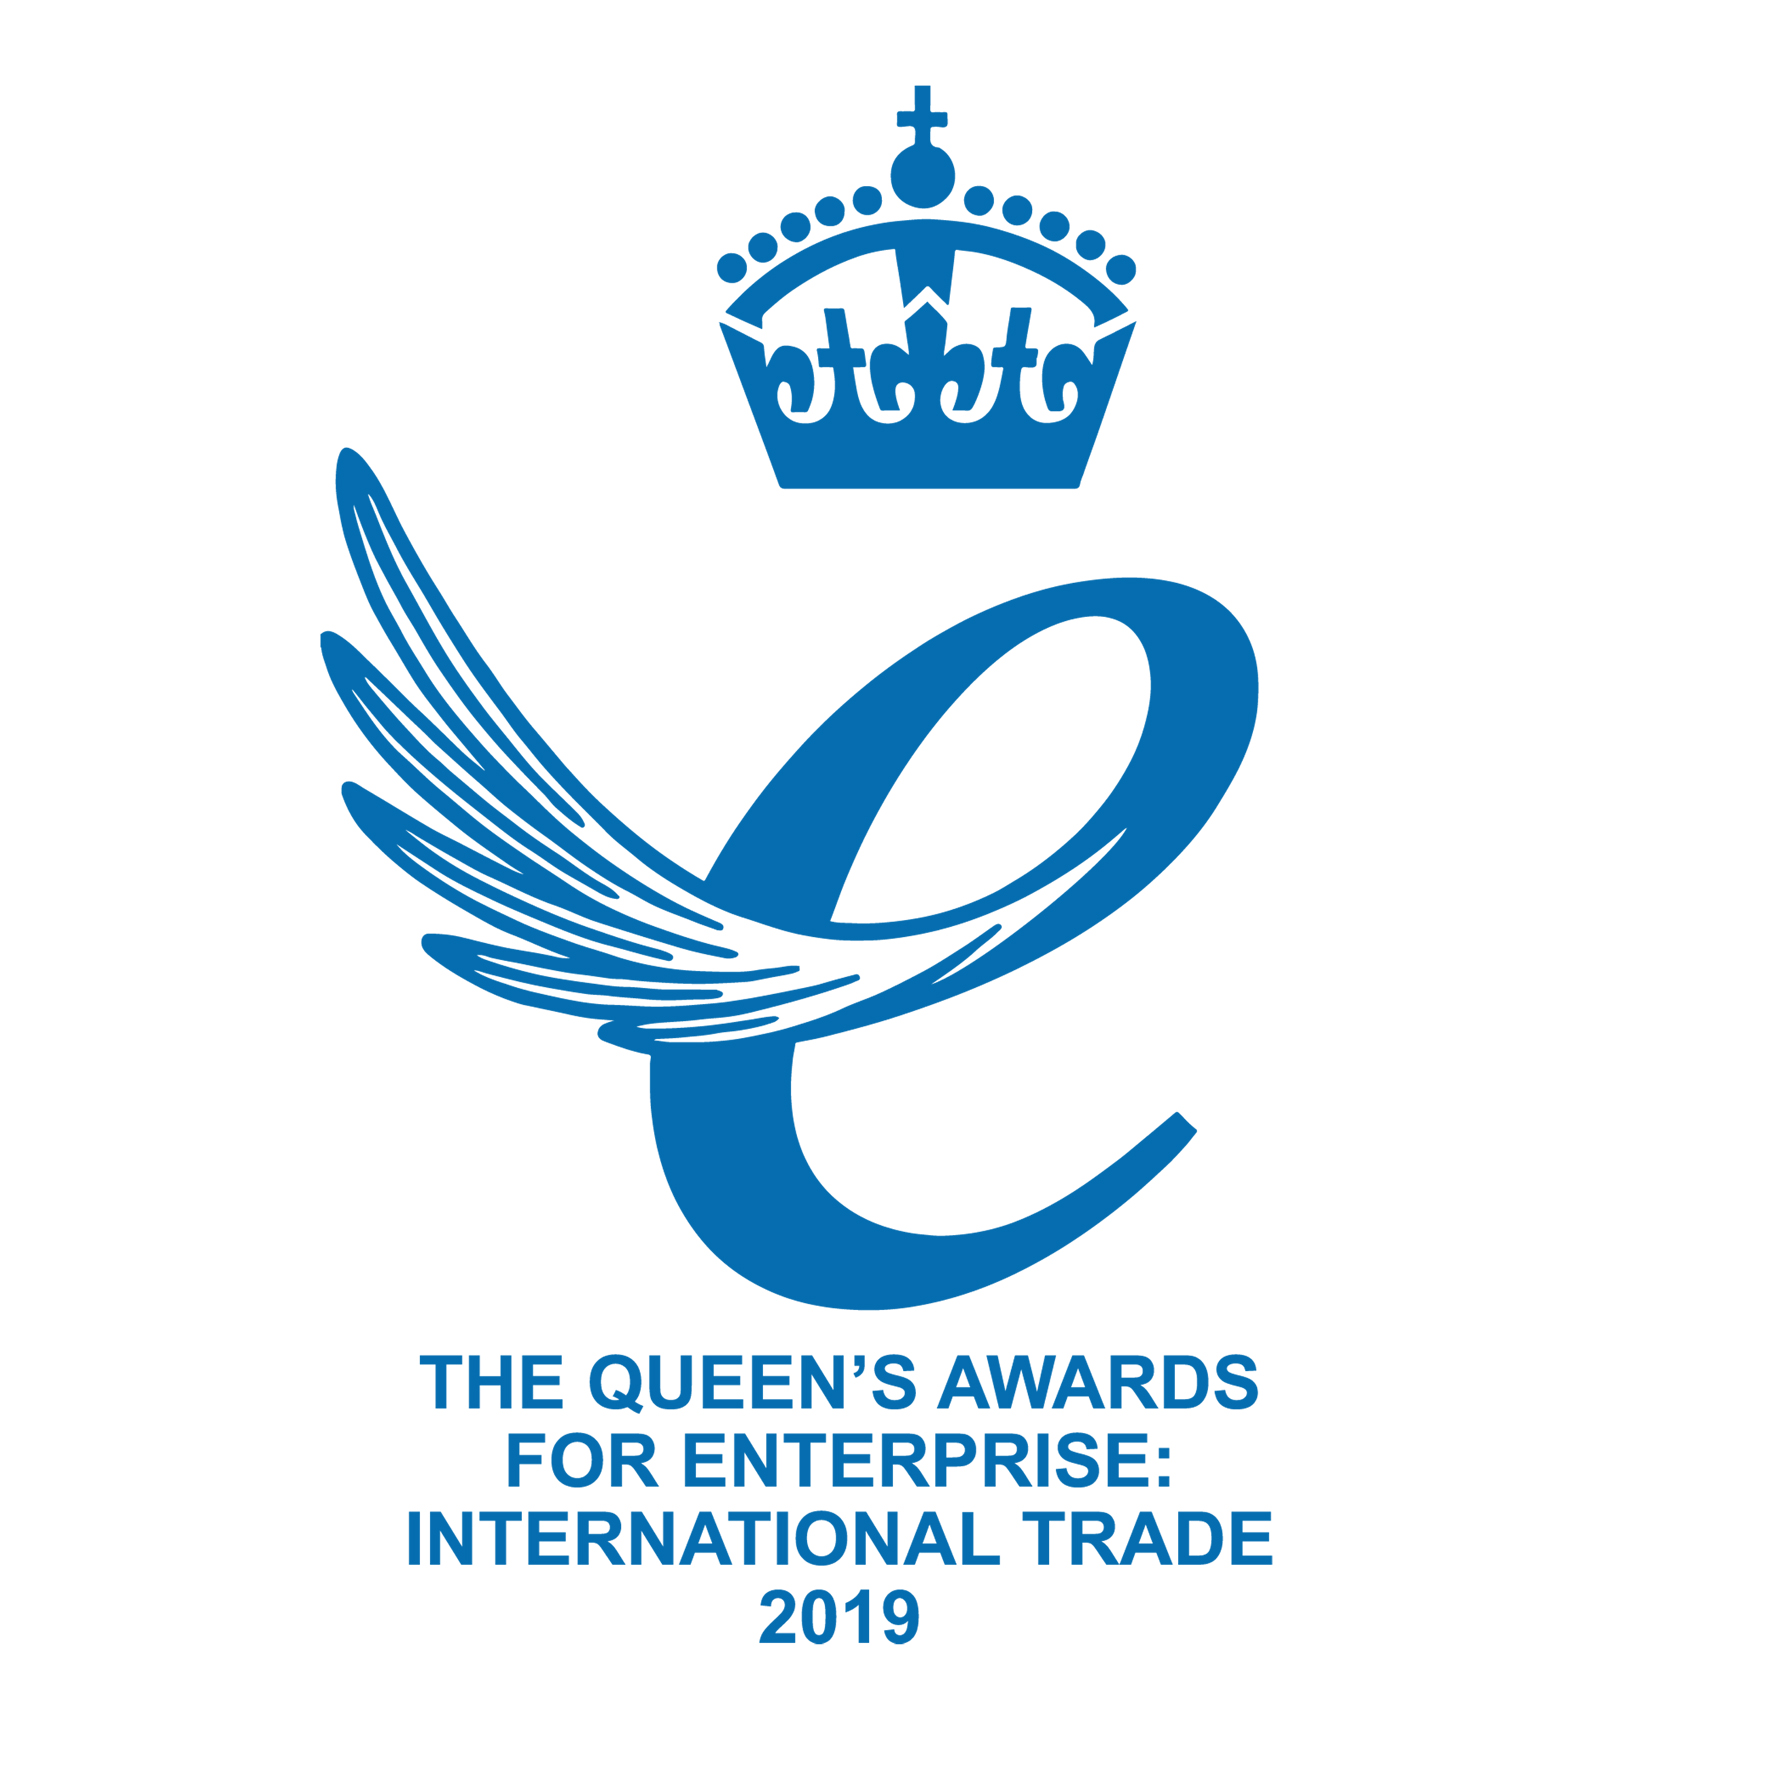 Queen's Award for Enterprise International Trade logo